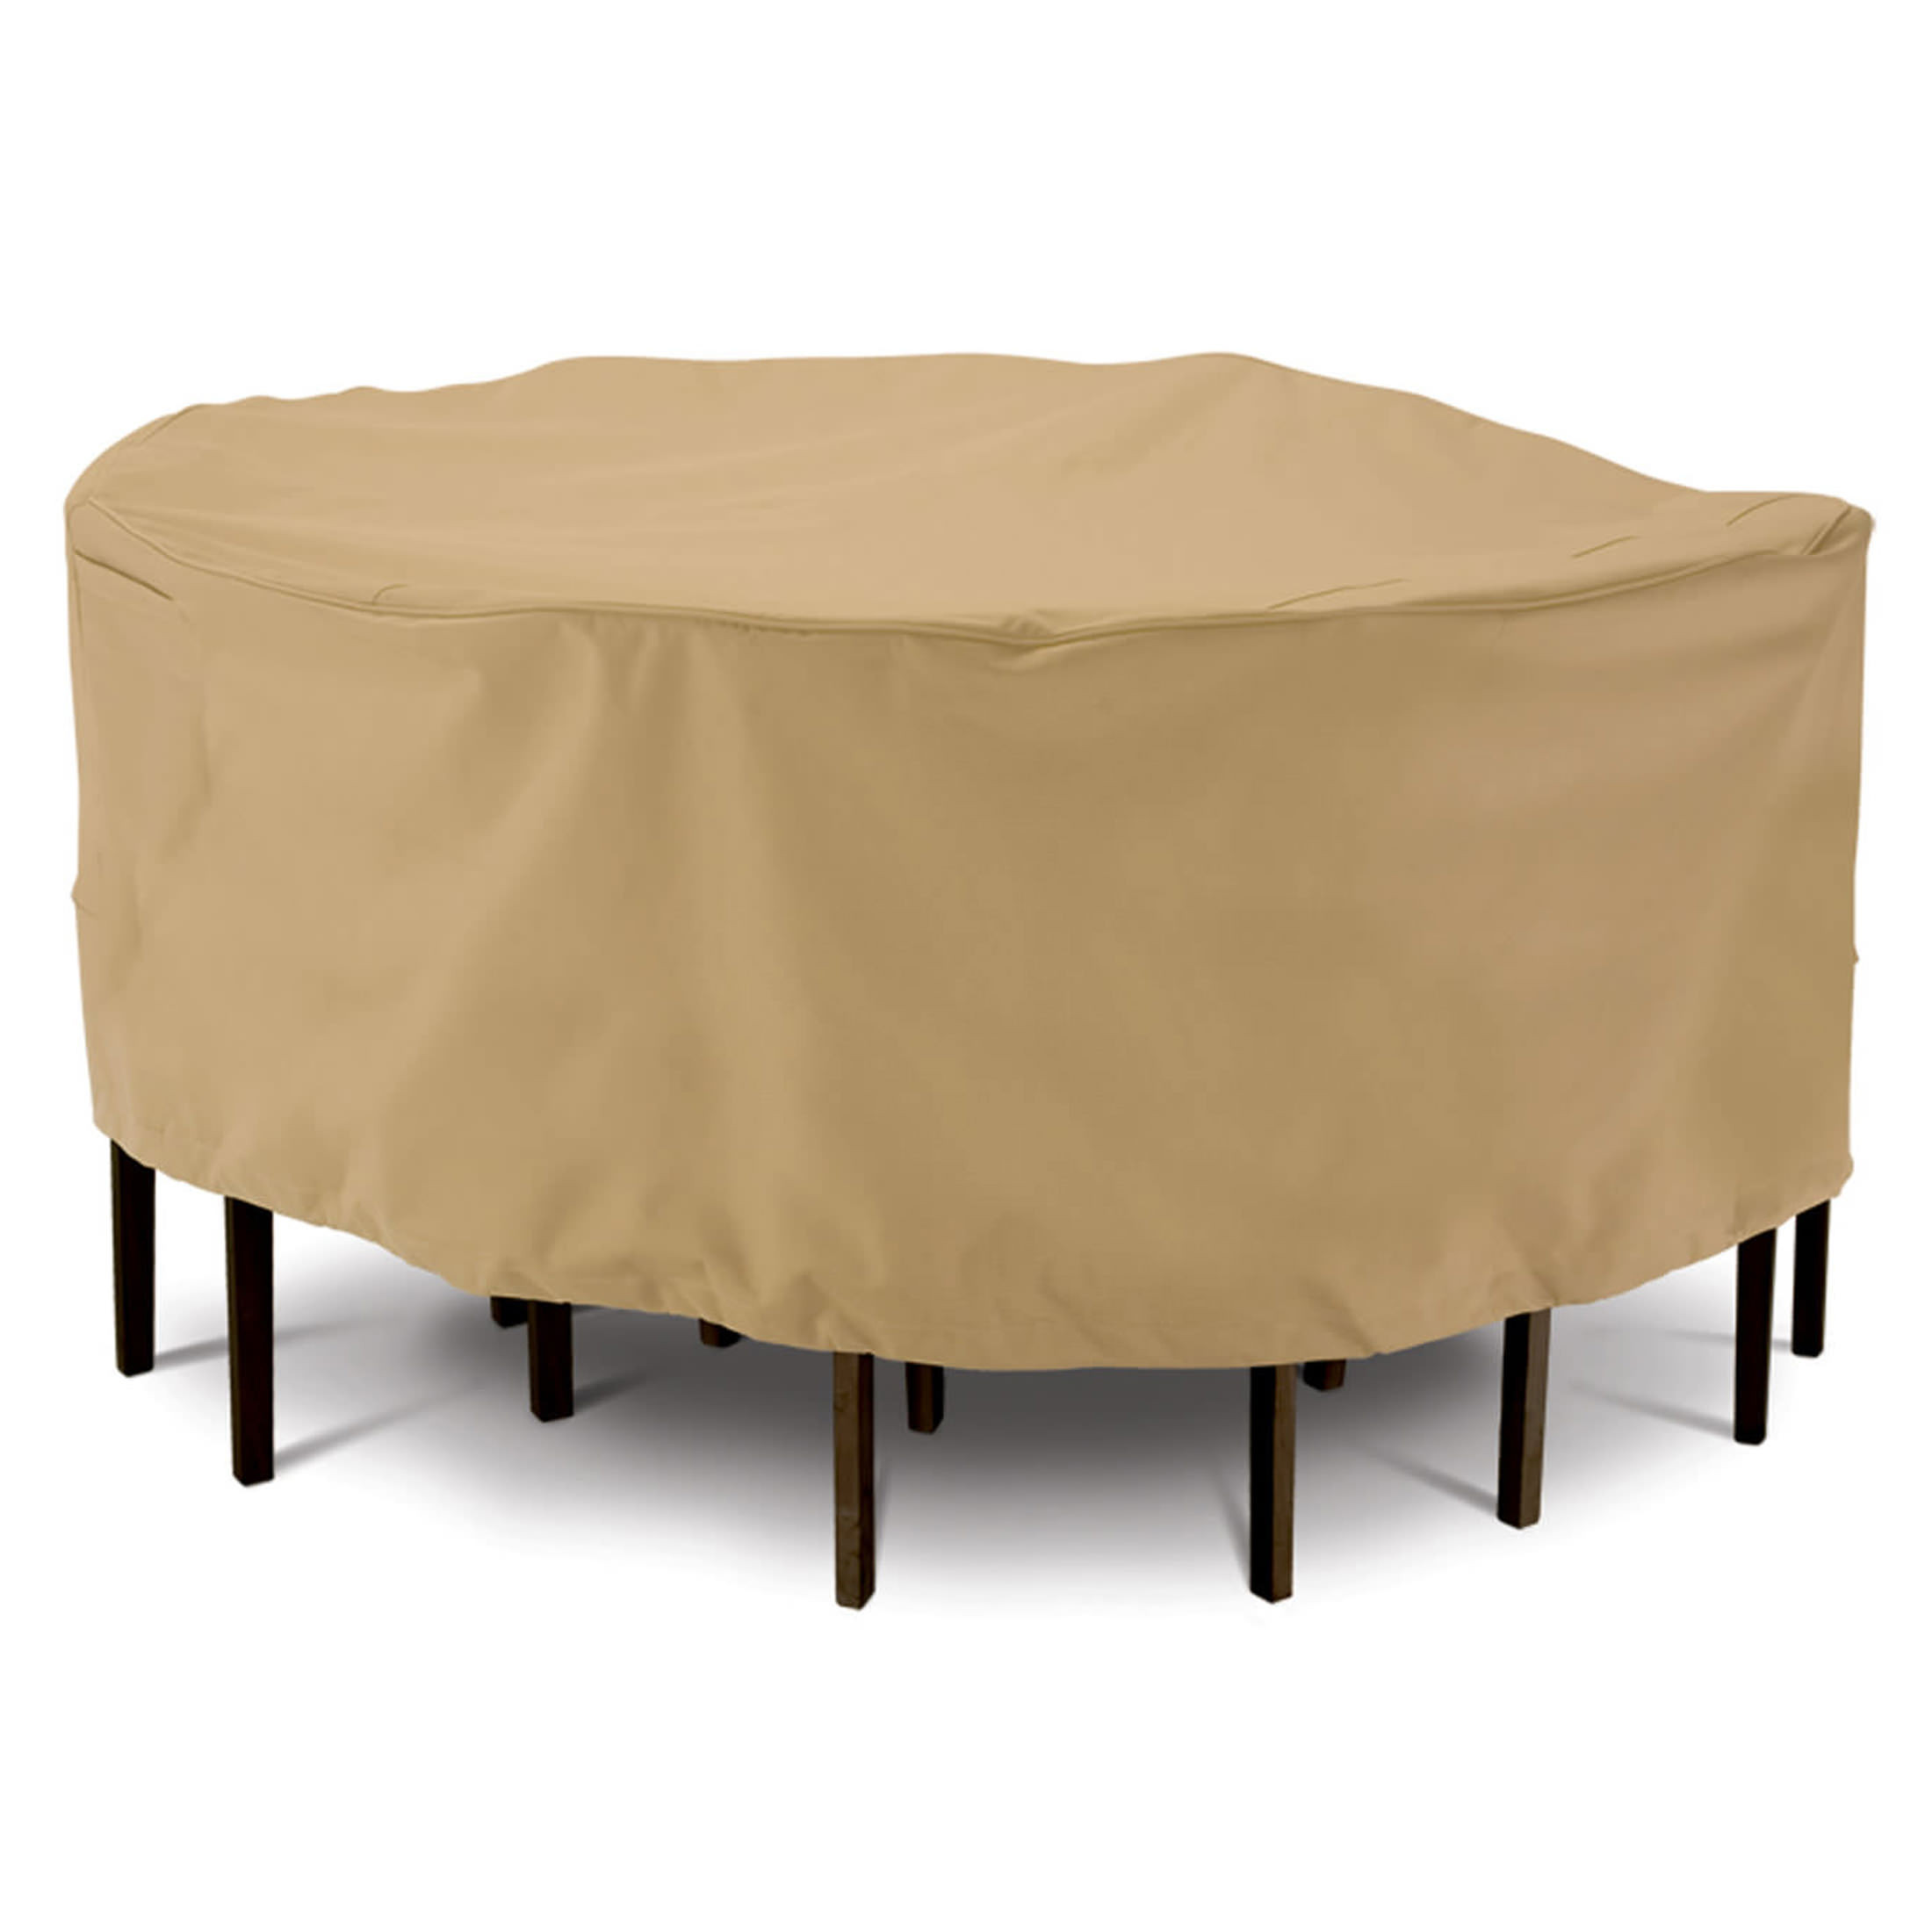 accessories terrazzo large round sand table and chair set cover